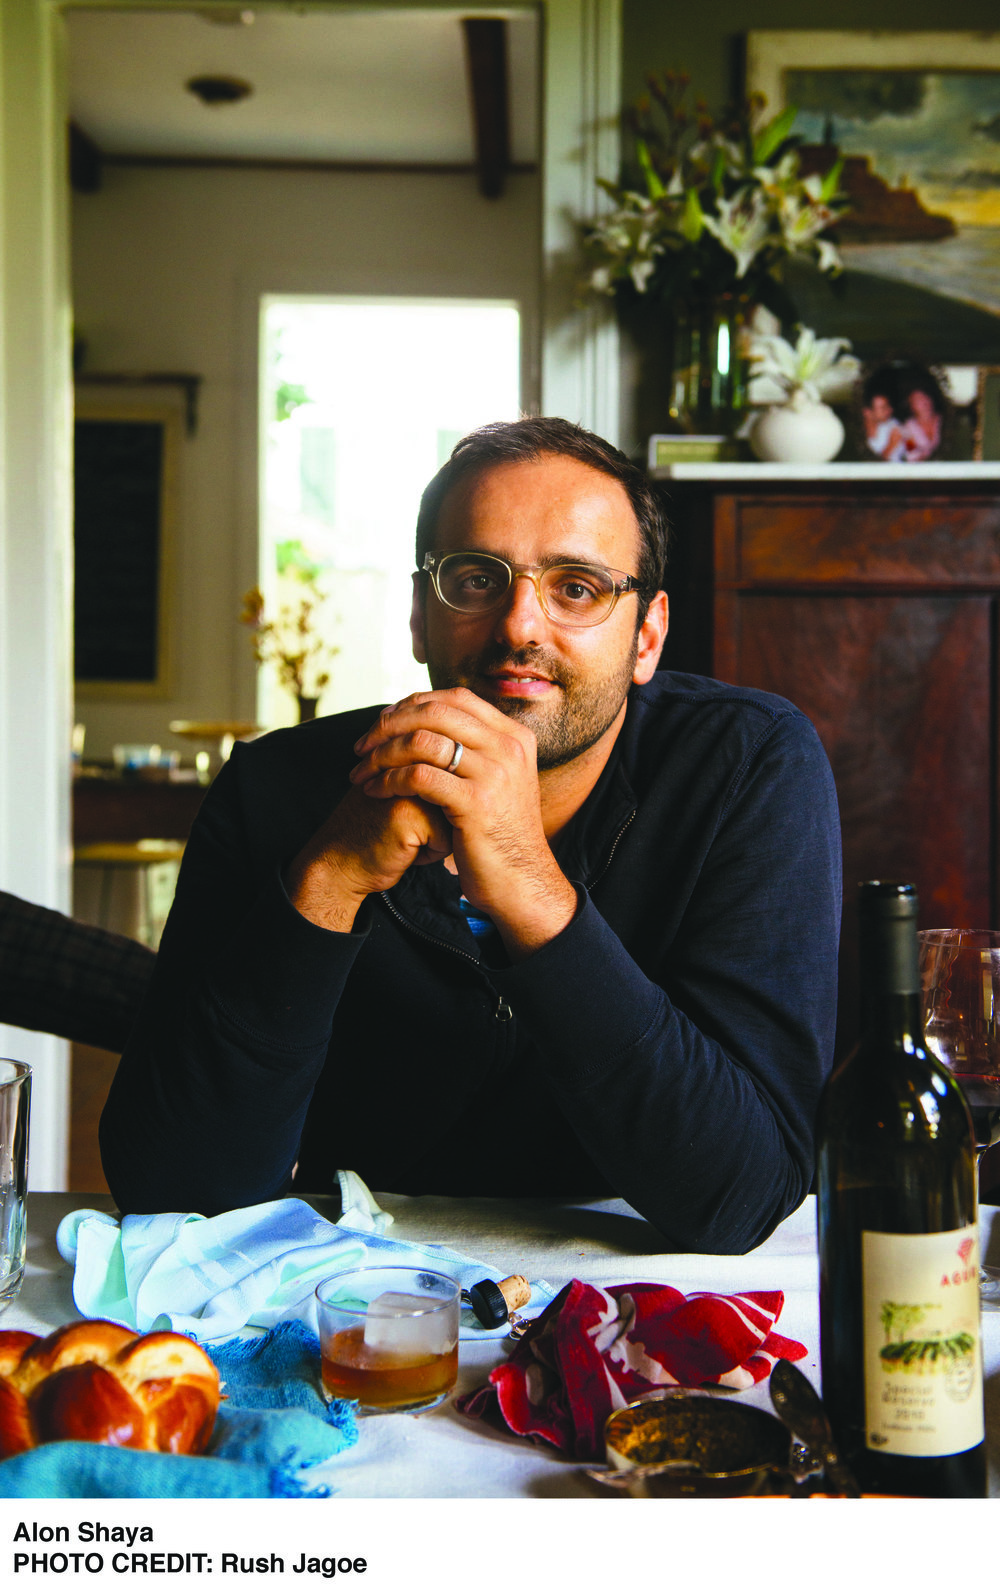 """Coming home from school and opening the front door of the house and smelling the peppers and the eggplants—to me, that was a connection to family. … That was always the connection with my grandmother's cooking: it made me feel normal again."" - — Alon Shaya"